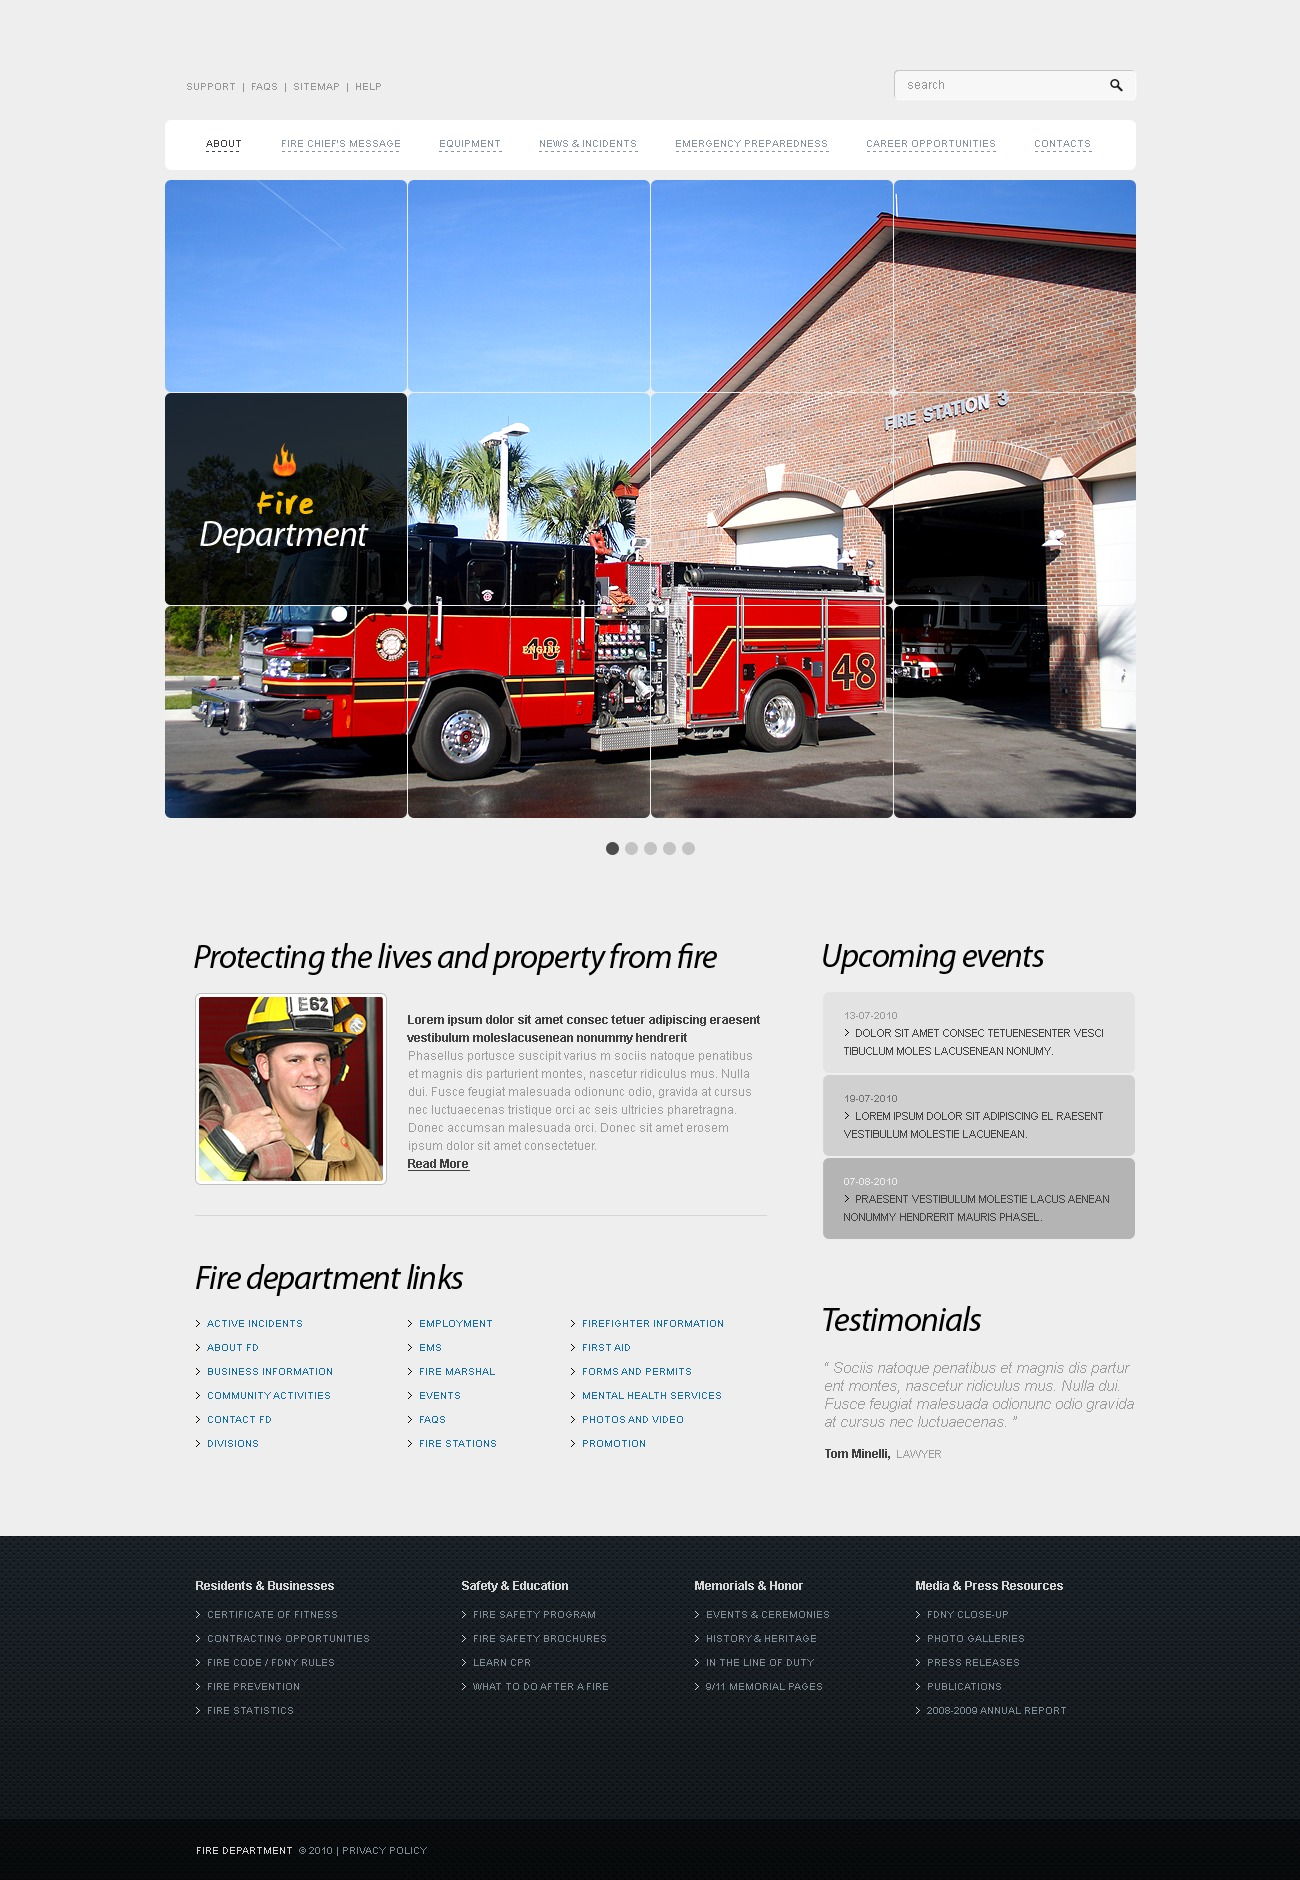 The Fire Department PSD Design 54121, one of the best PSD templates of its kind (security, most popular, wide, jquery), also known as fire department PSD template, firemen PSD template, helmet PSD template, saving PSD template, station PSD template, water PSD template, training PSD template, courses PSD template, conflagration PSD template, alarm PSD template, firehouse PSD template, smoke PSD template, posture PSD template, sensor PSD template, nozzle PSD template, tag PSD template, foam and related with fire department, firemen, helmet, saving, station, water, training, courses, conflagration, alarm, firehouse, smoke, posture, sensor, nozzle, tag, foam, etc.